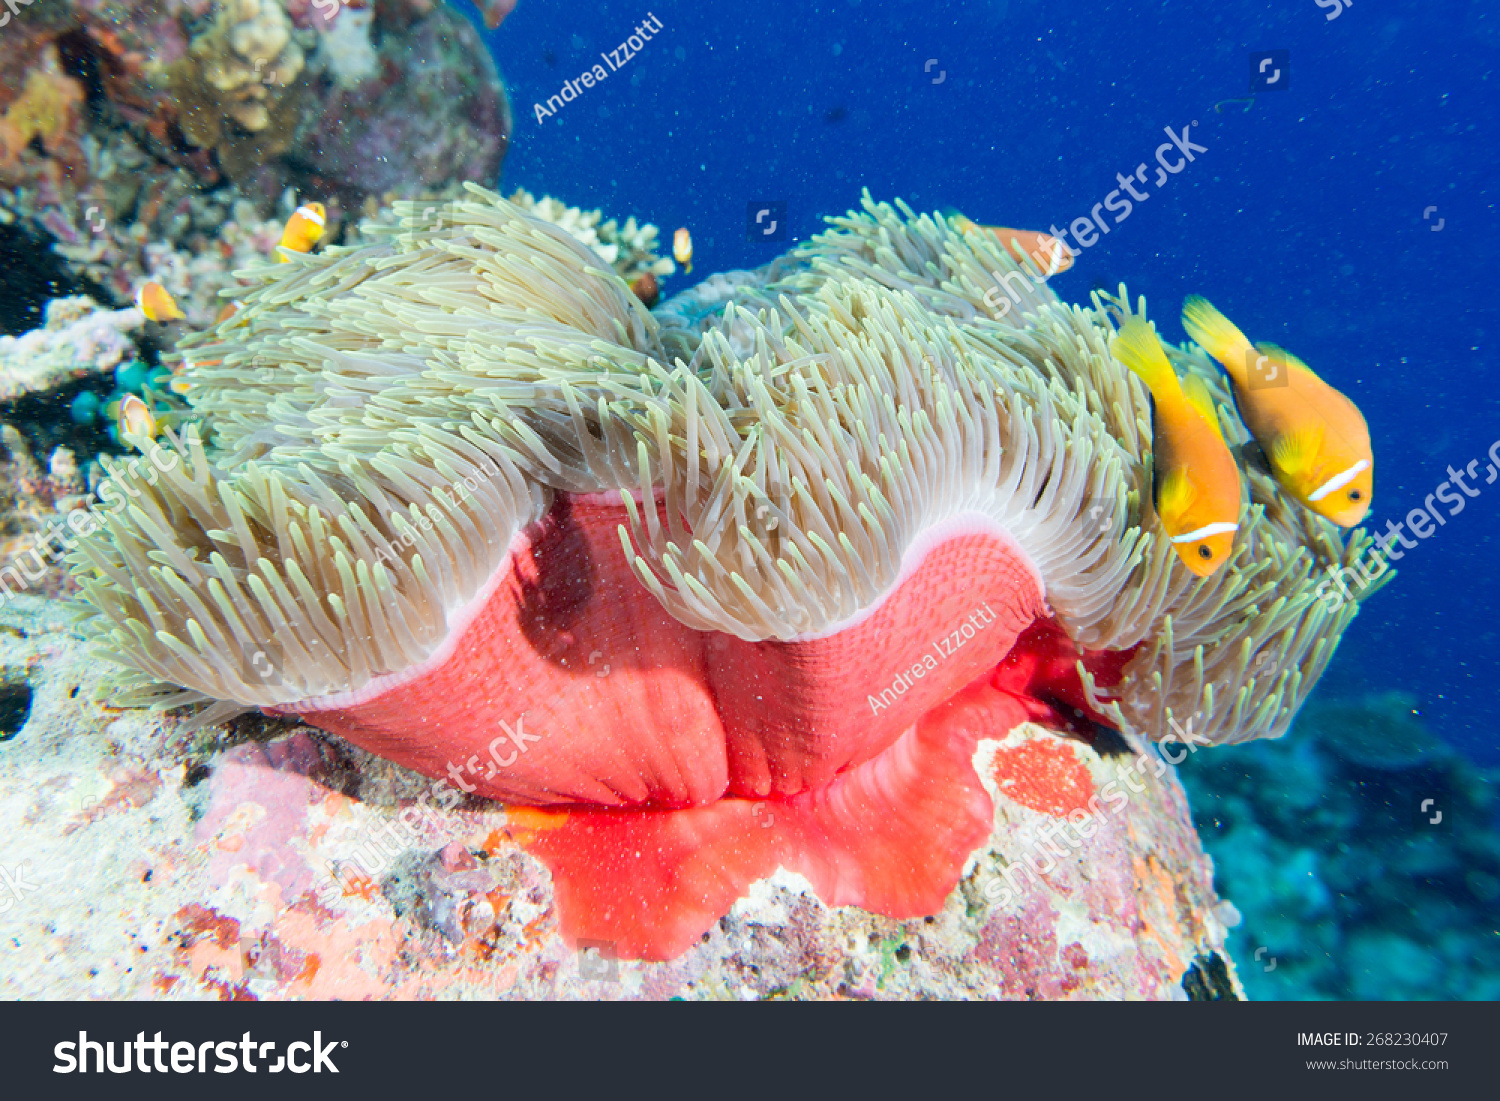 Clown Fish Family Inside Red Anemone Stock Photo 268230407 ...